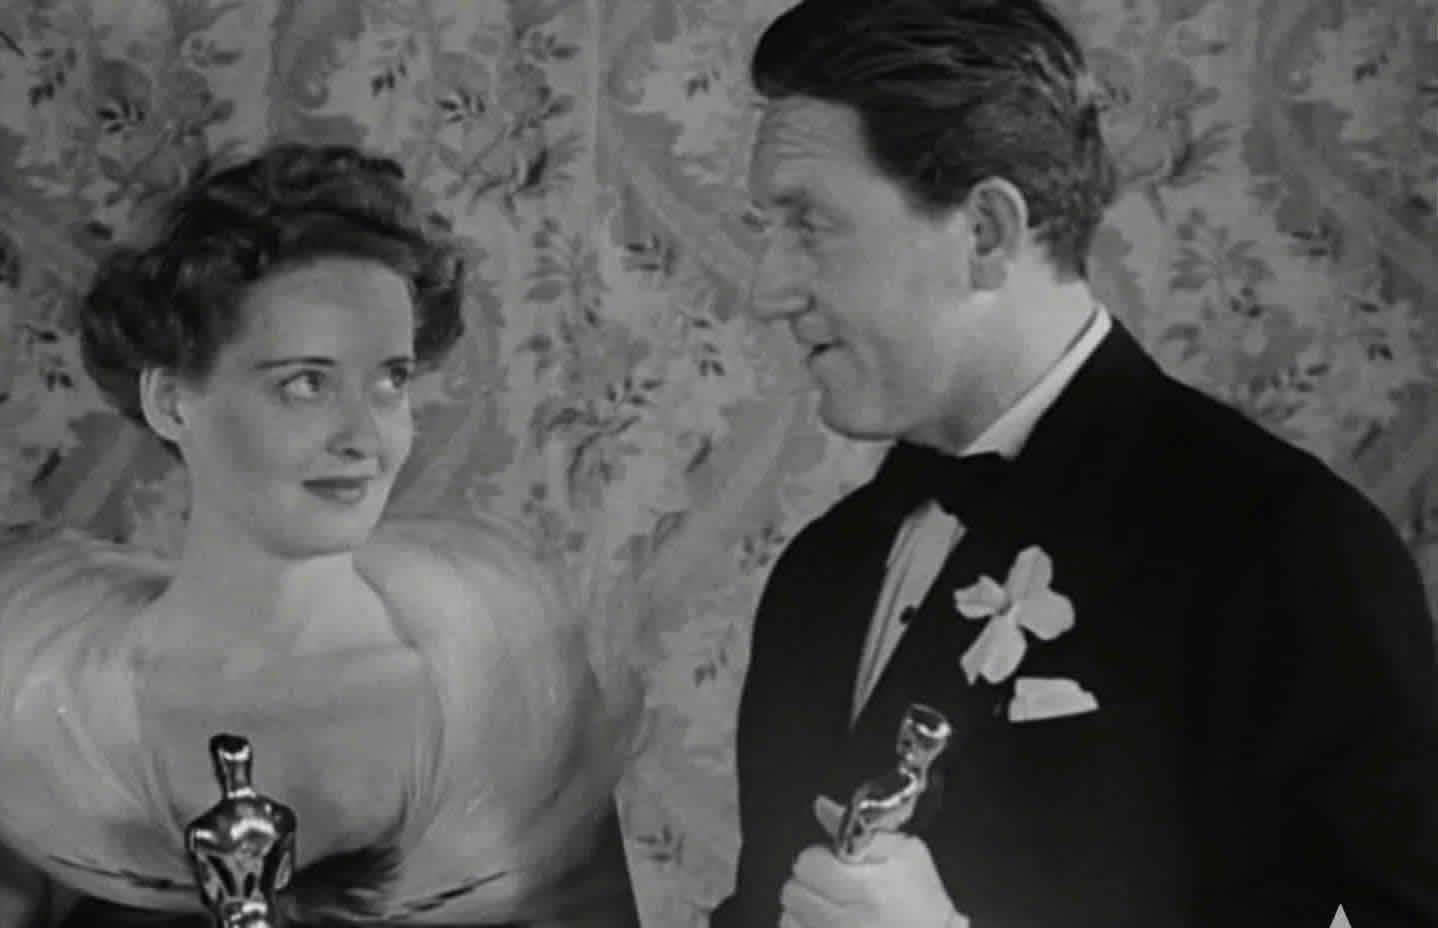 Spencer Tracy won Best Actor for Captains Courageous at the Academy Awards today in 1939, becoming the first actor to win the Oscar in consecutive years